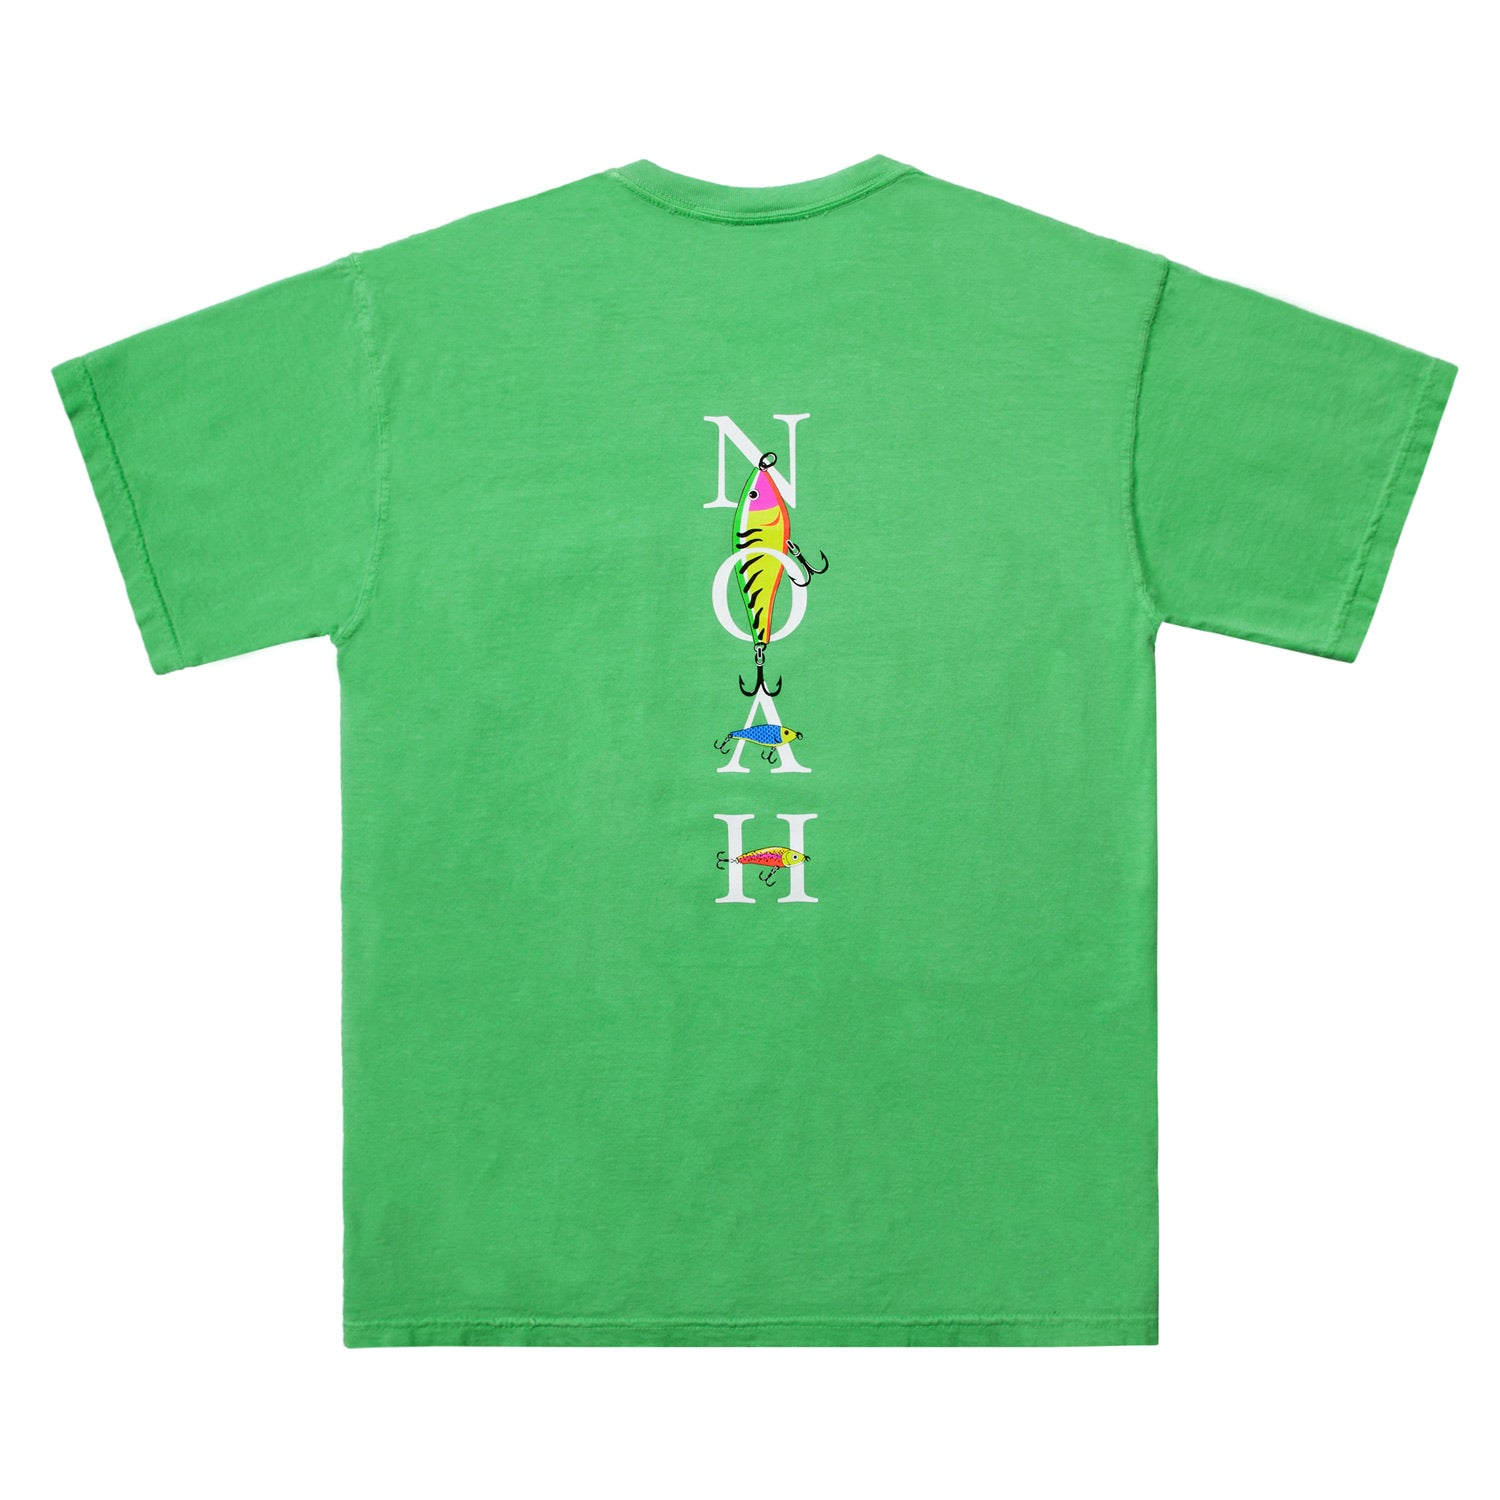 Fishing Lure Tee